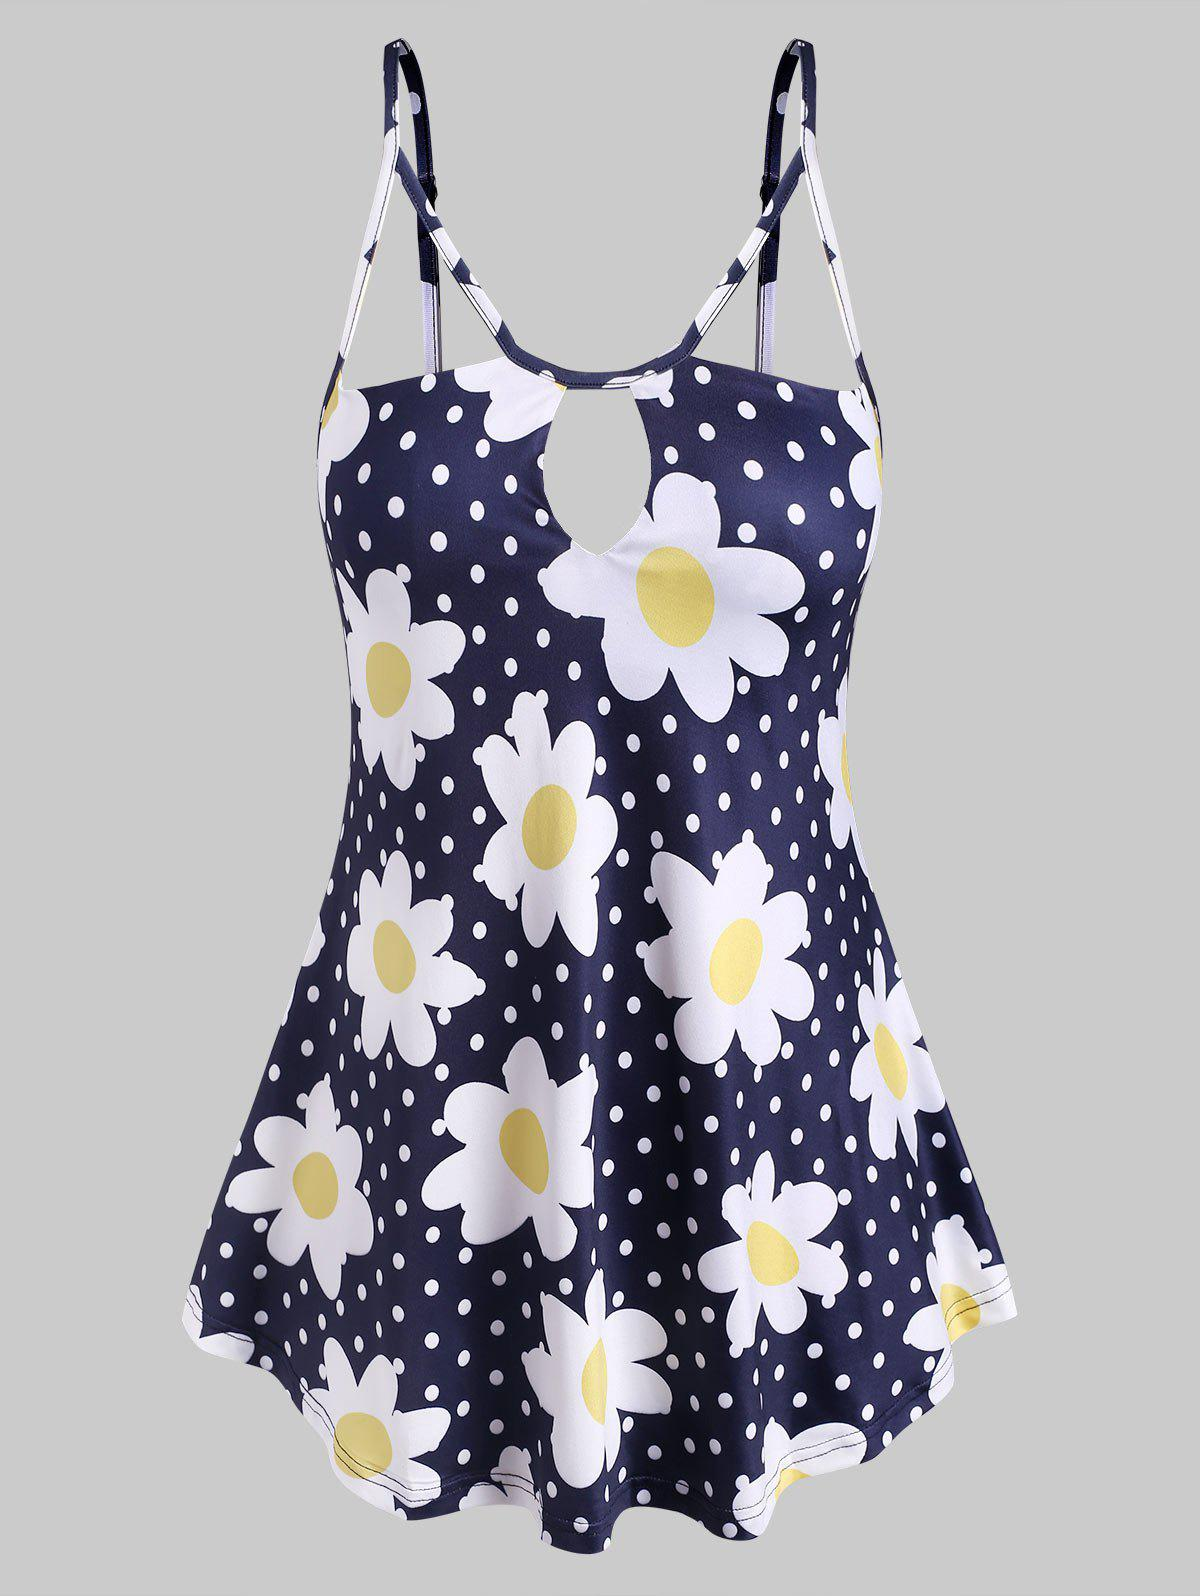 Daisy Dotted Keyhole Strappy Plus Size Cami Top - BLUE 1X